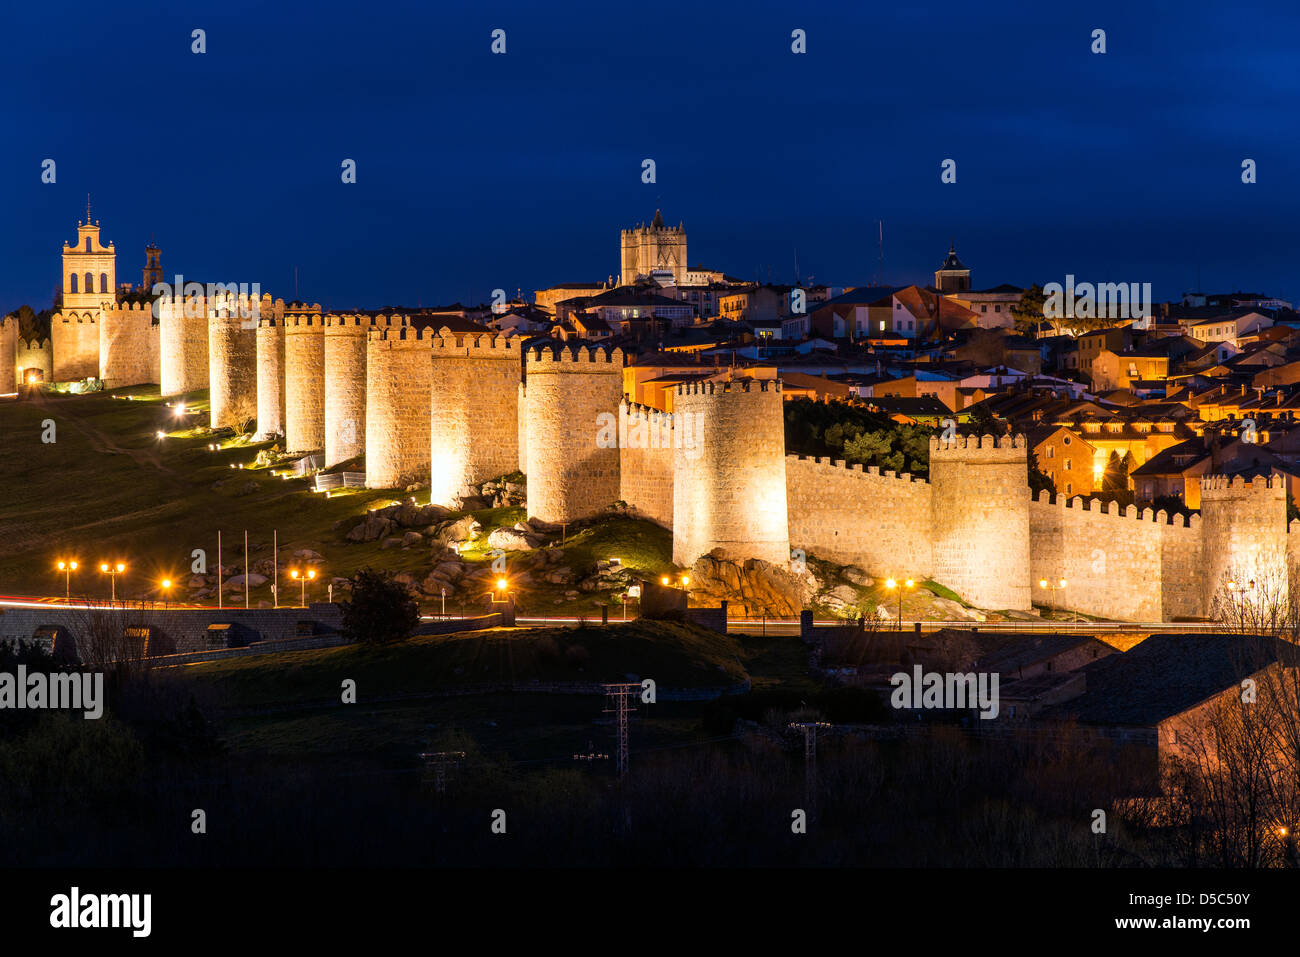 View from Cuatro Postes over the medieval city walls illuminated at night, Avila, Castile and León, Spain - Stock Image